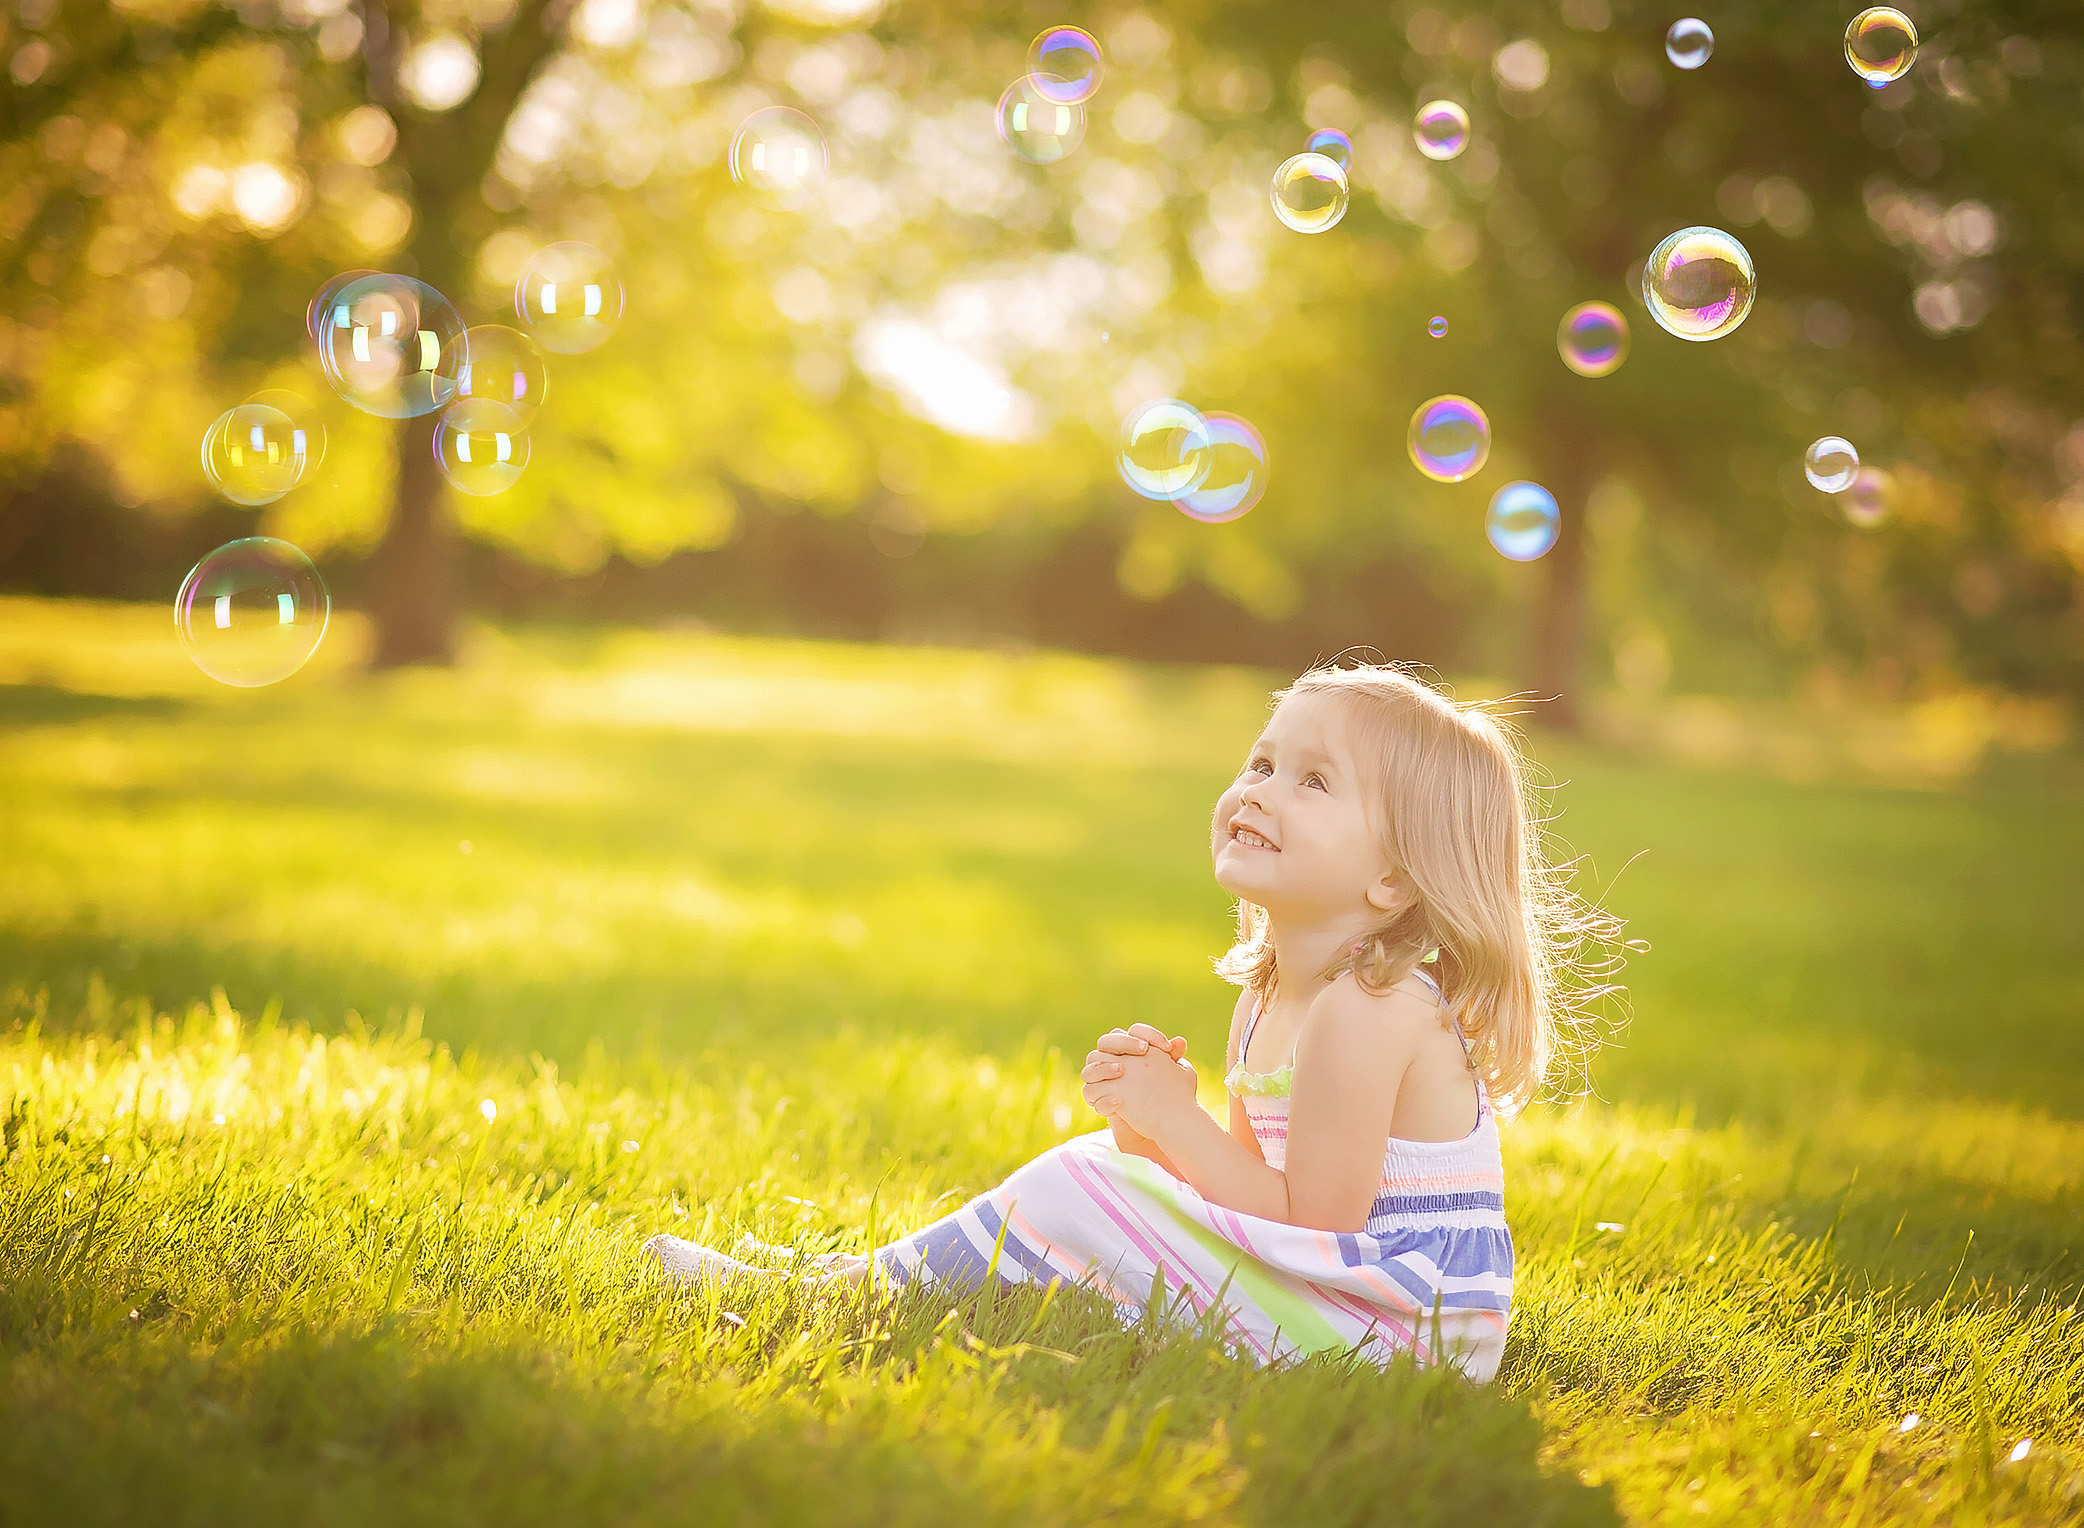 little girl watching bubbles